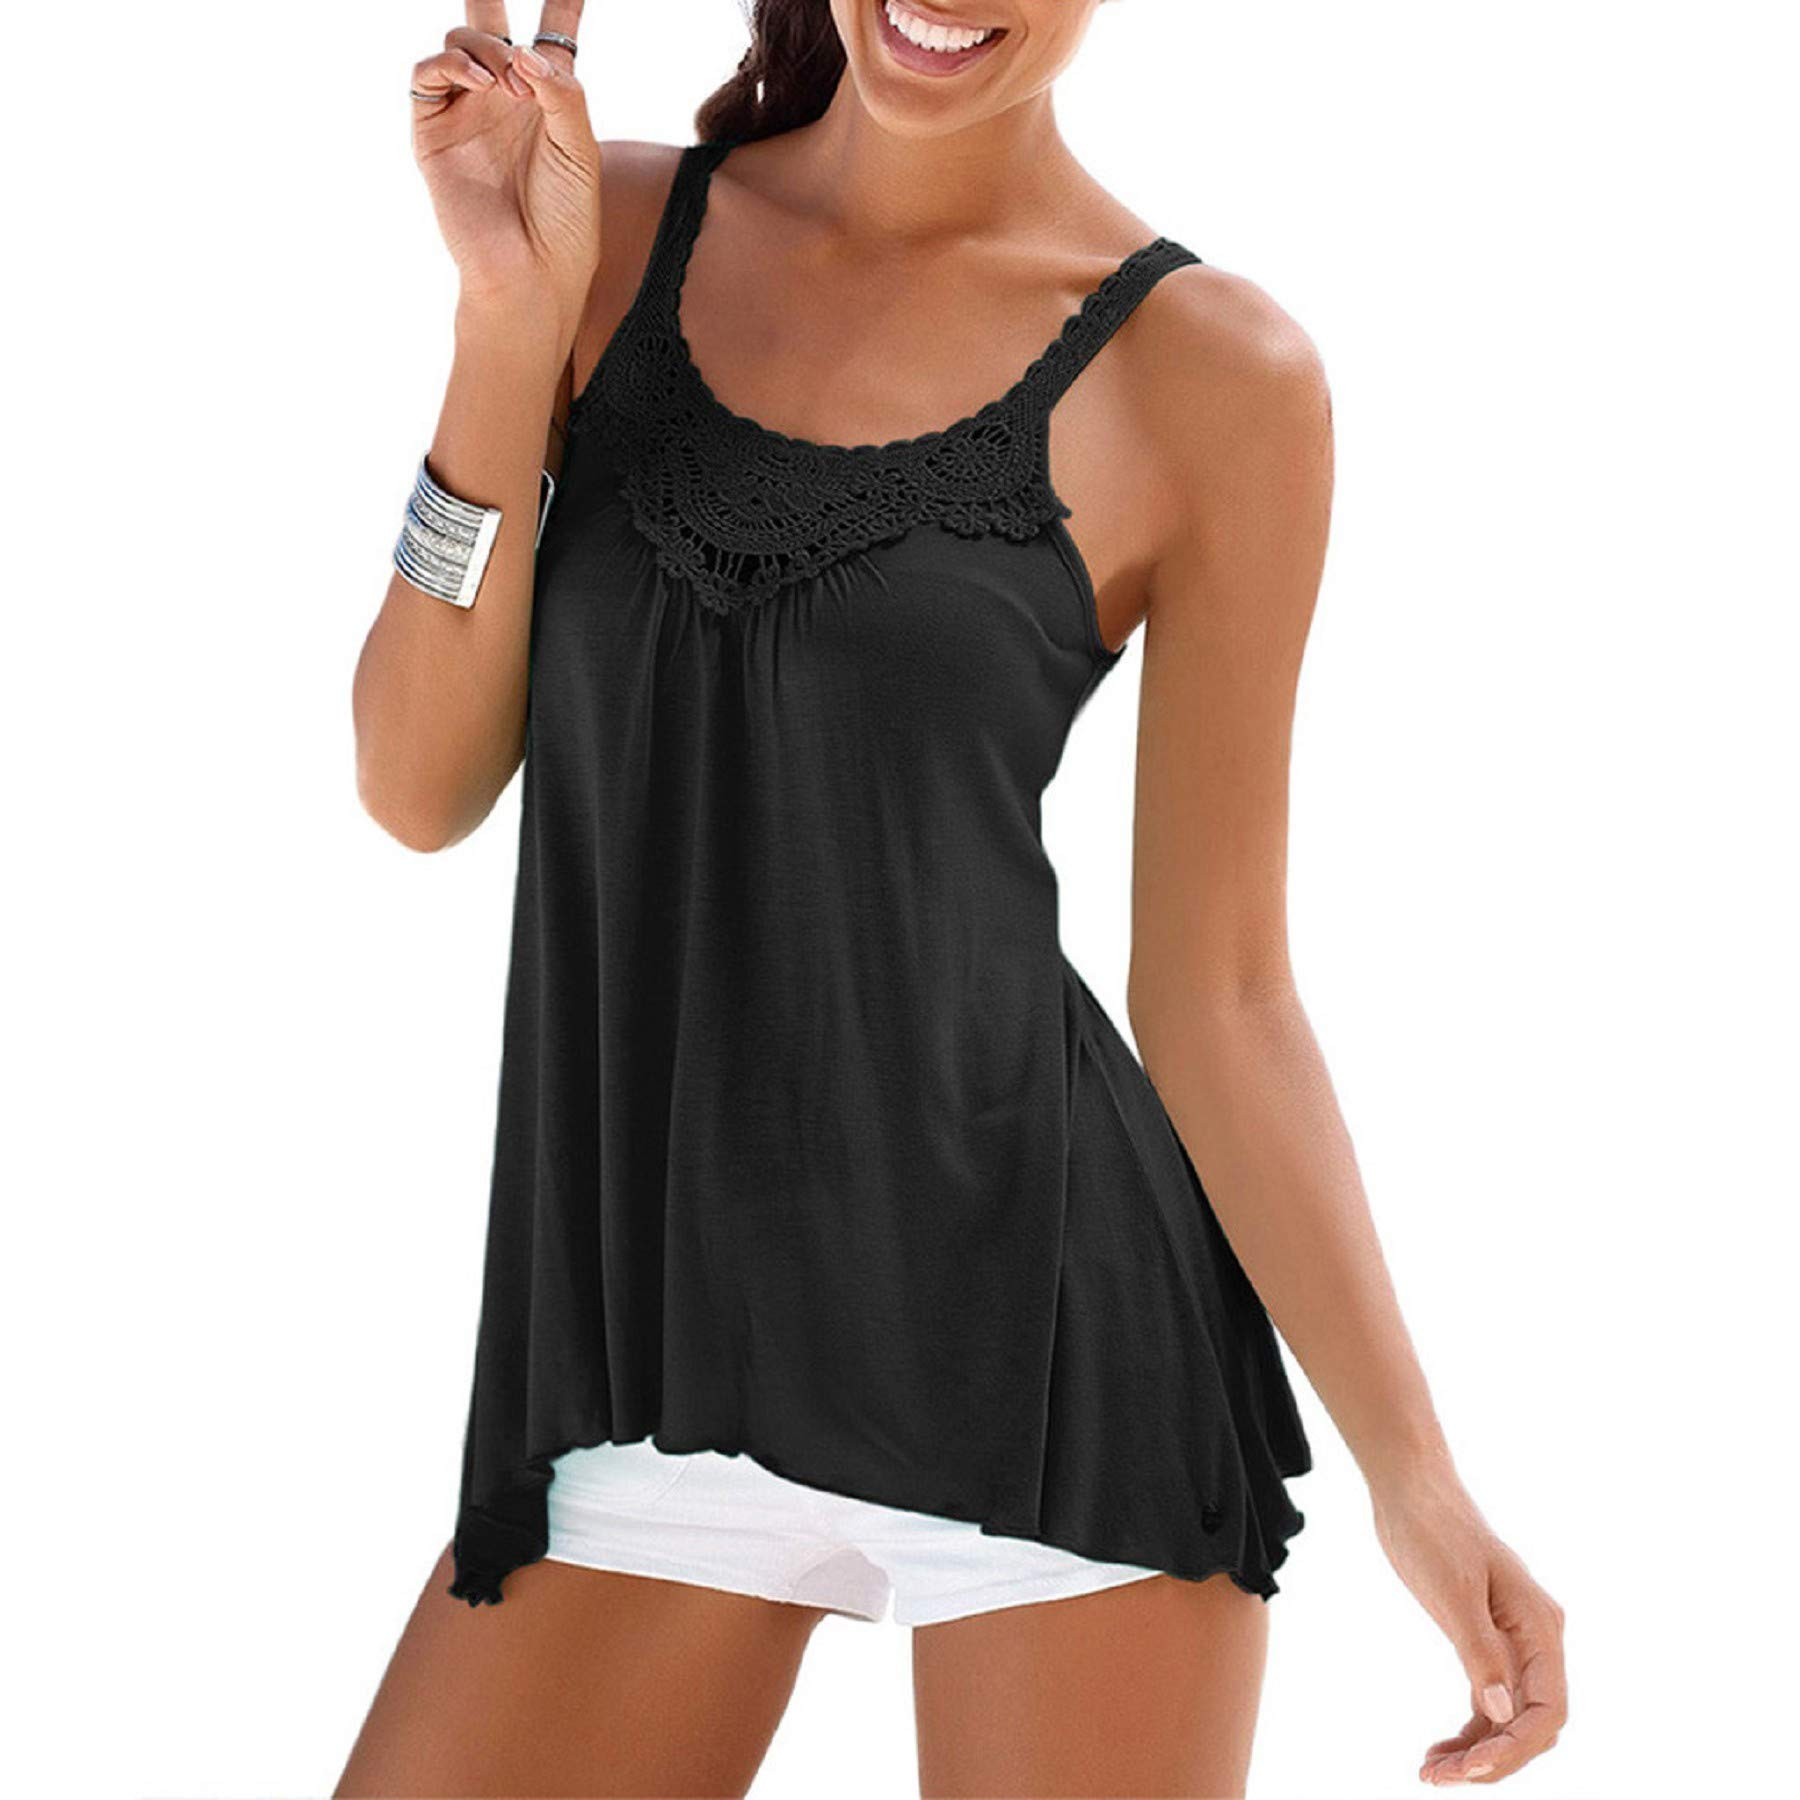 Women's Sleeveless Flowy Tank Top, Women Casual Summer Lace Strappy Vest Top Shirt Blouse Cami Tops Black